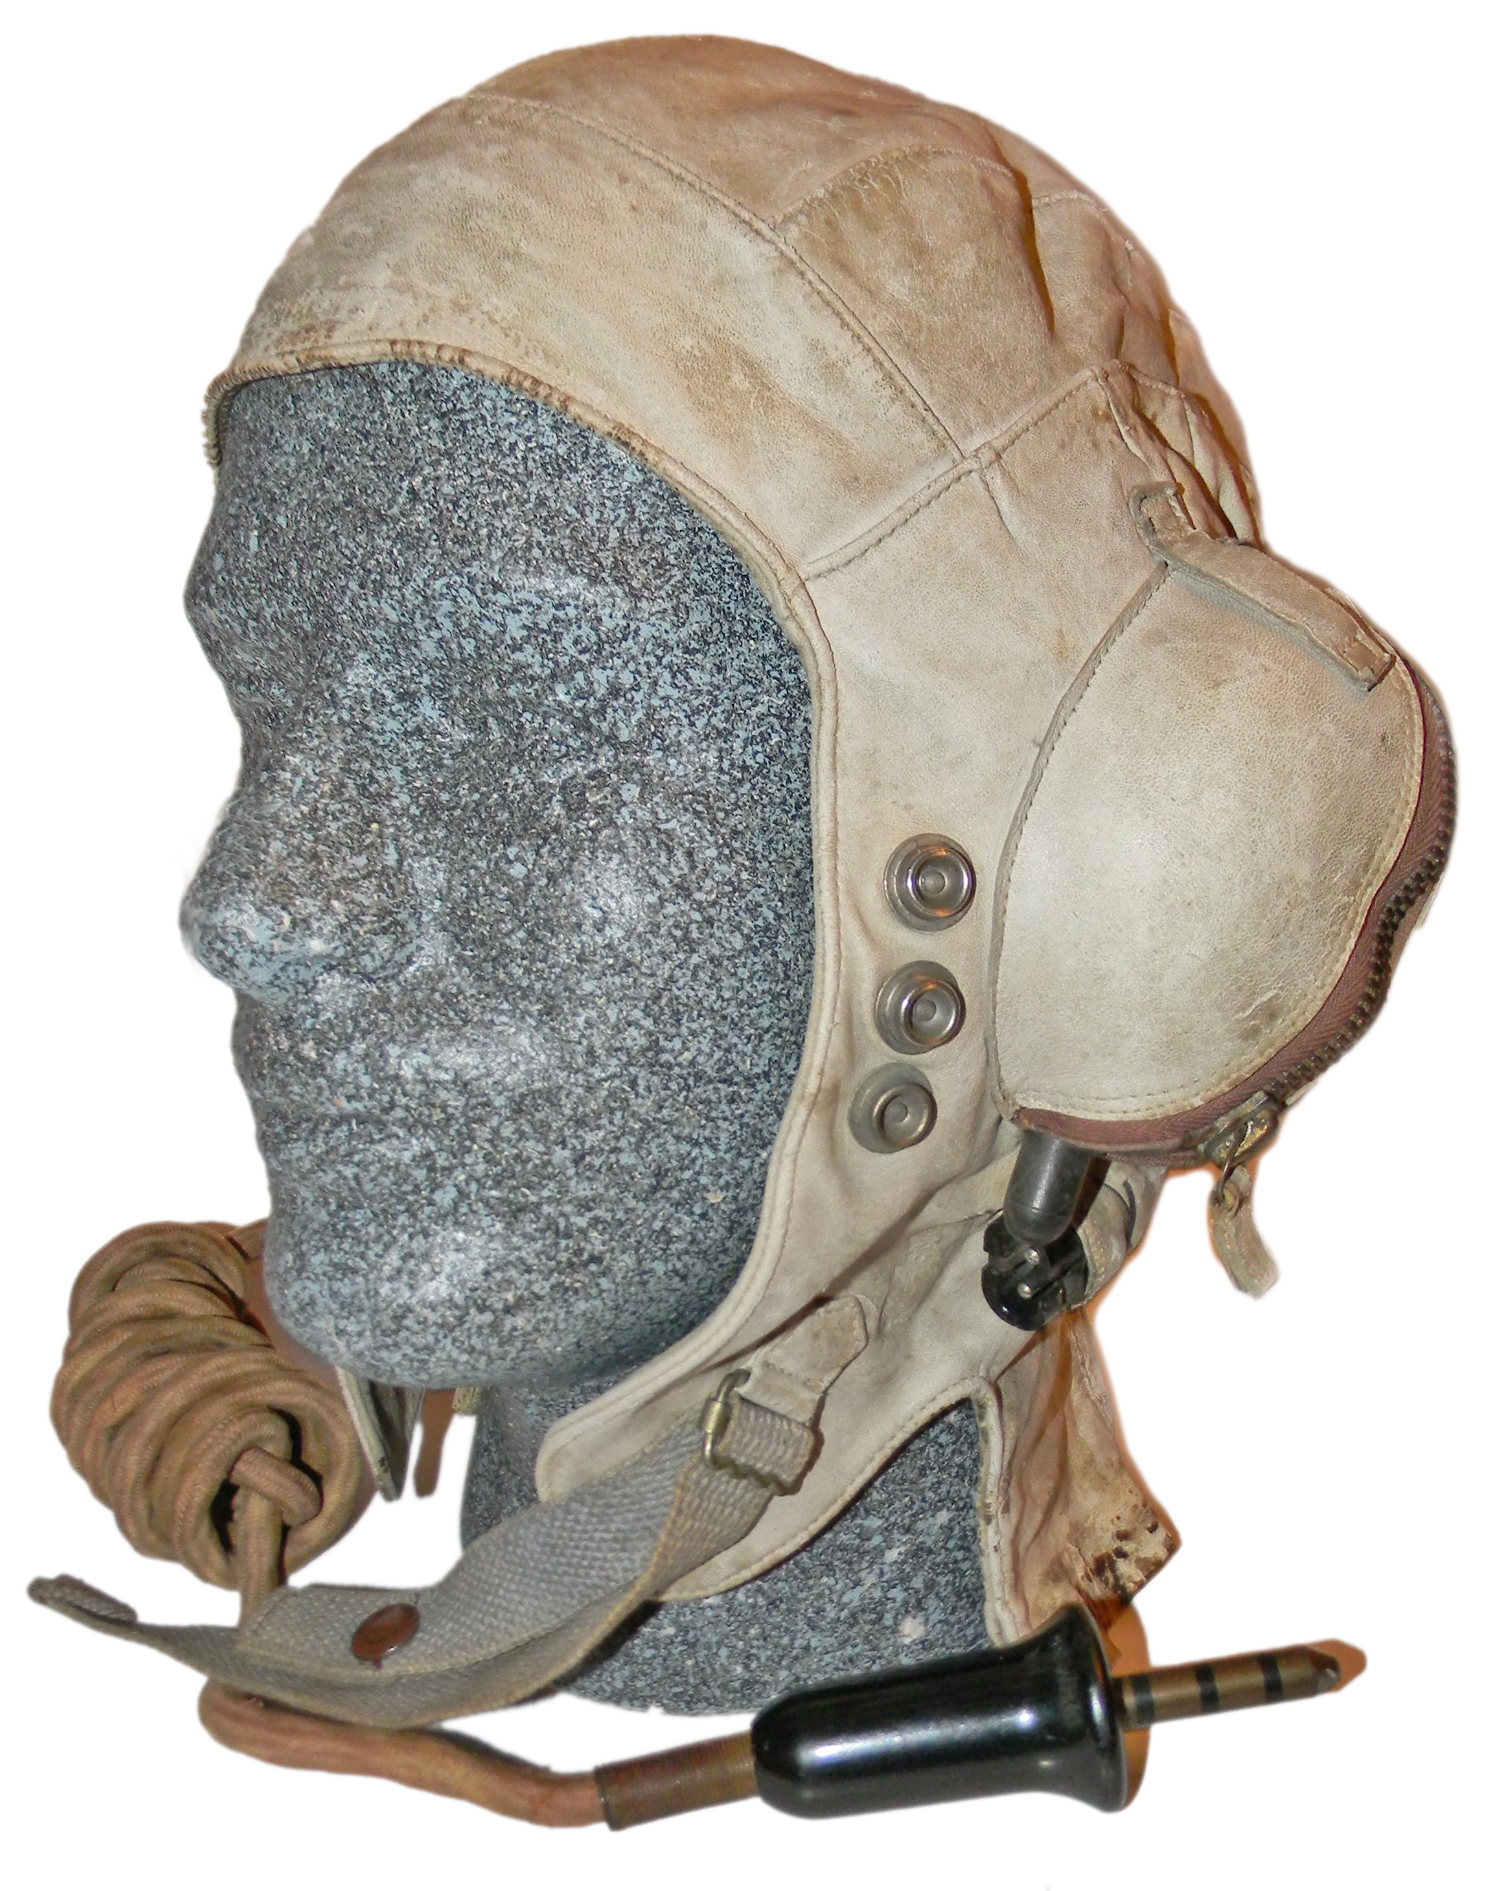 WWII RN FAA Immersion suit helmet